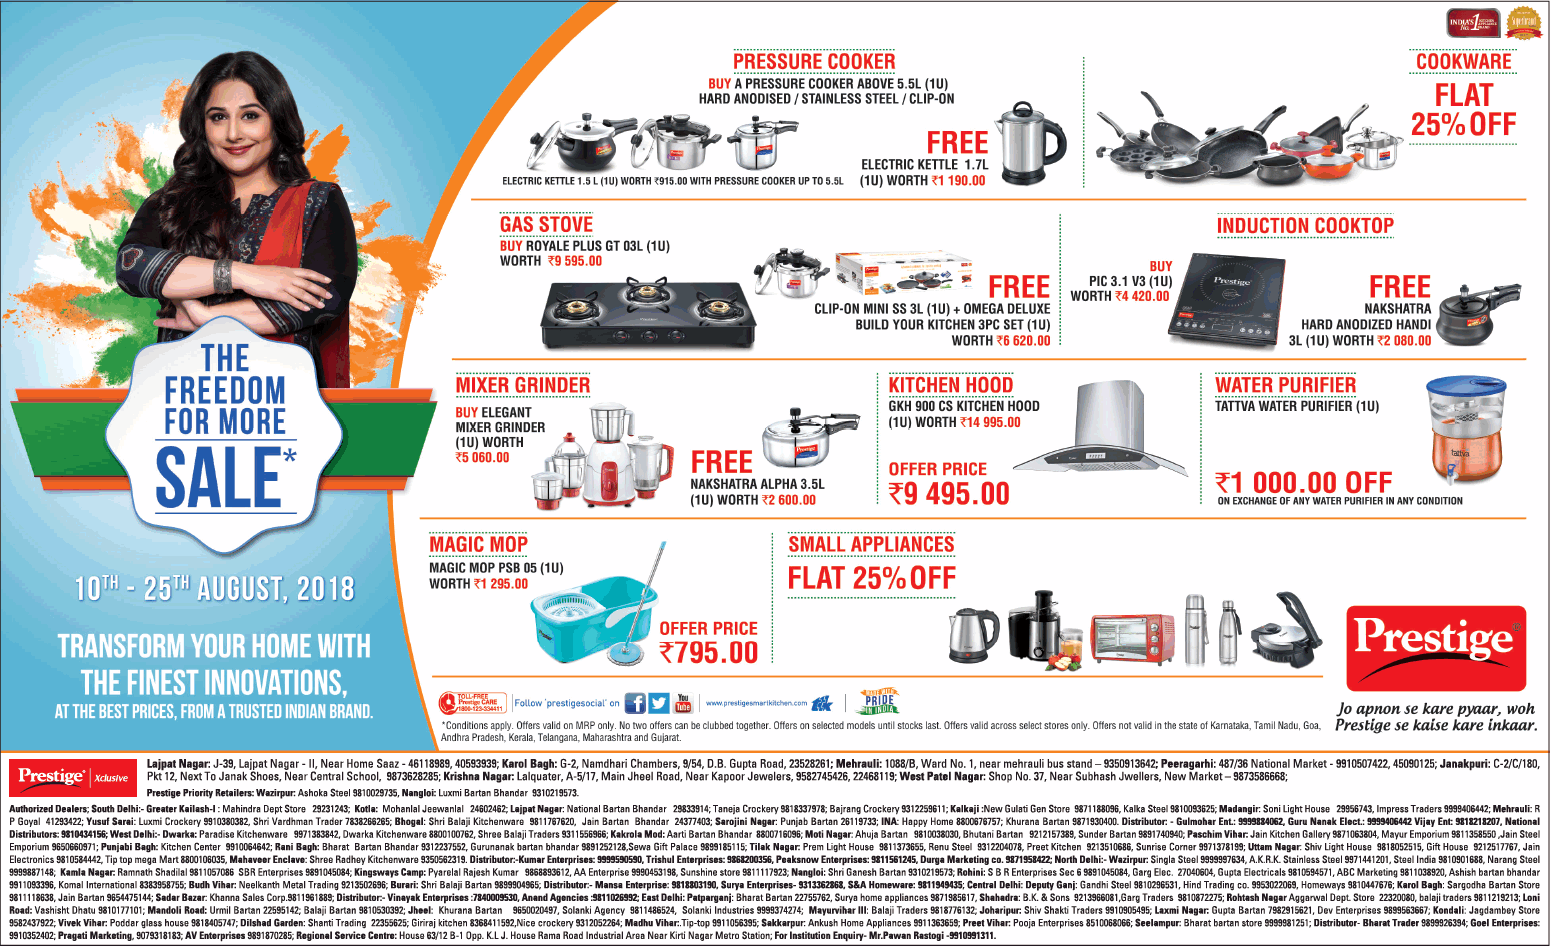 Prestige Kitchen Appliances - Attractive Offer